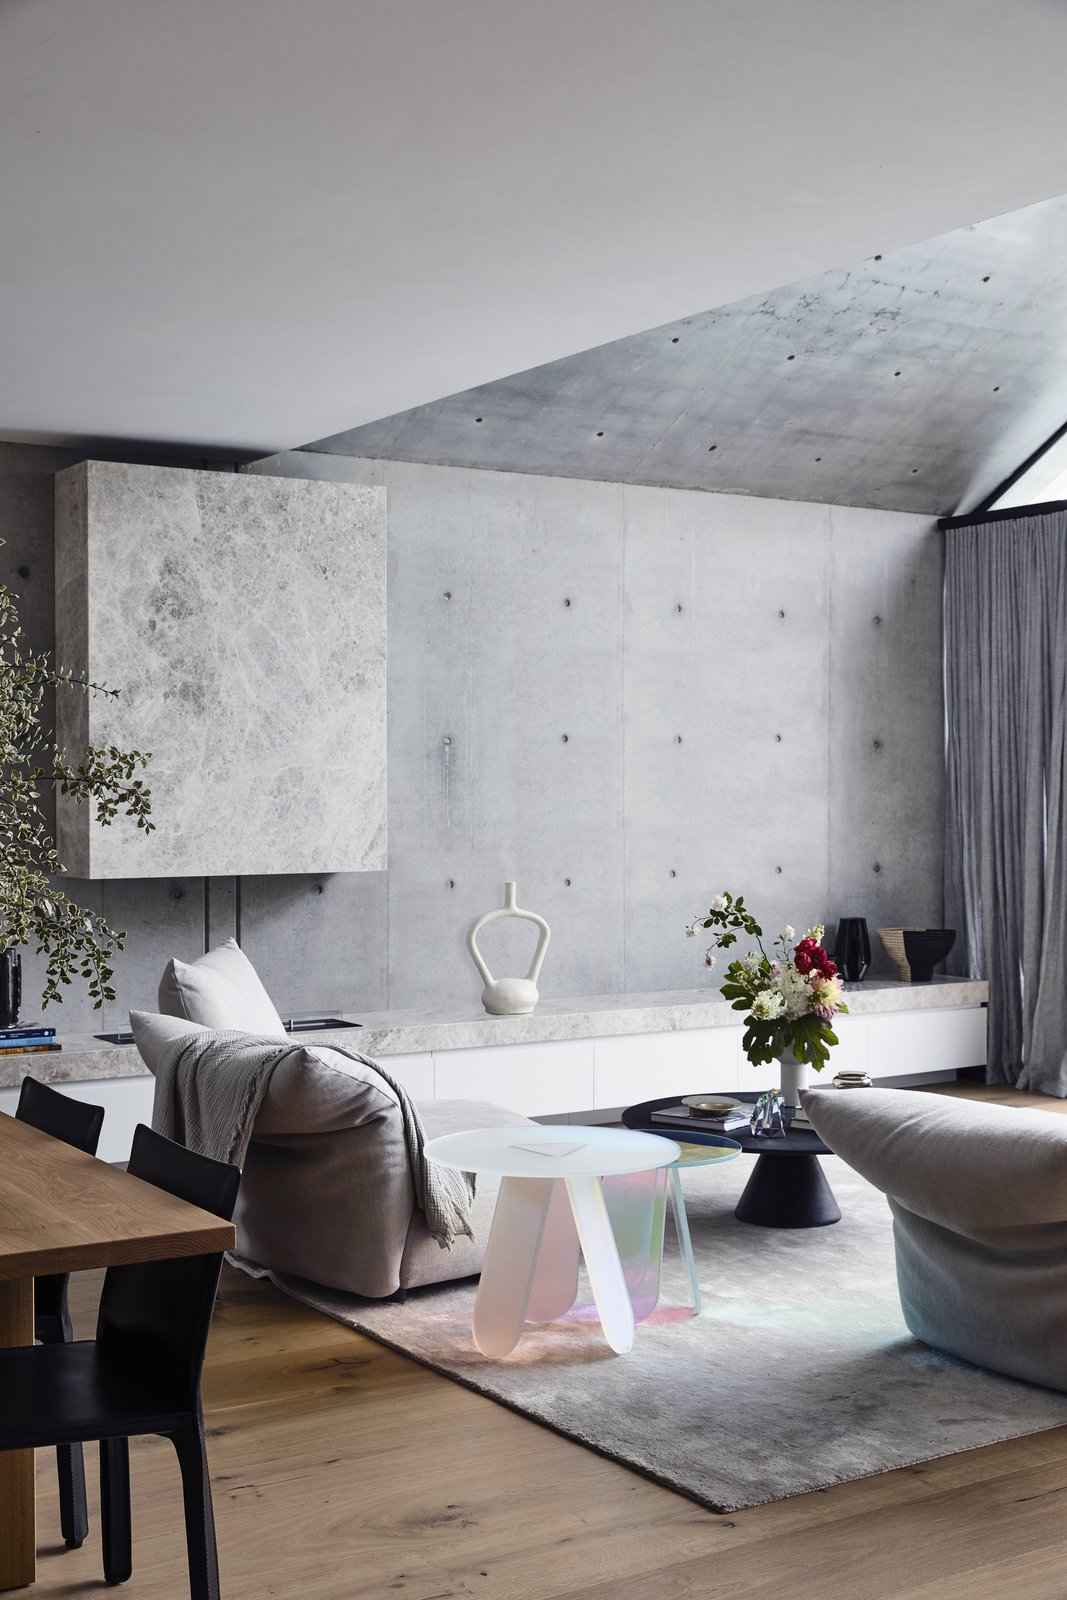 Scandizzo House, Kennon+ great room living space